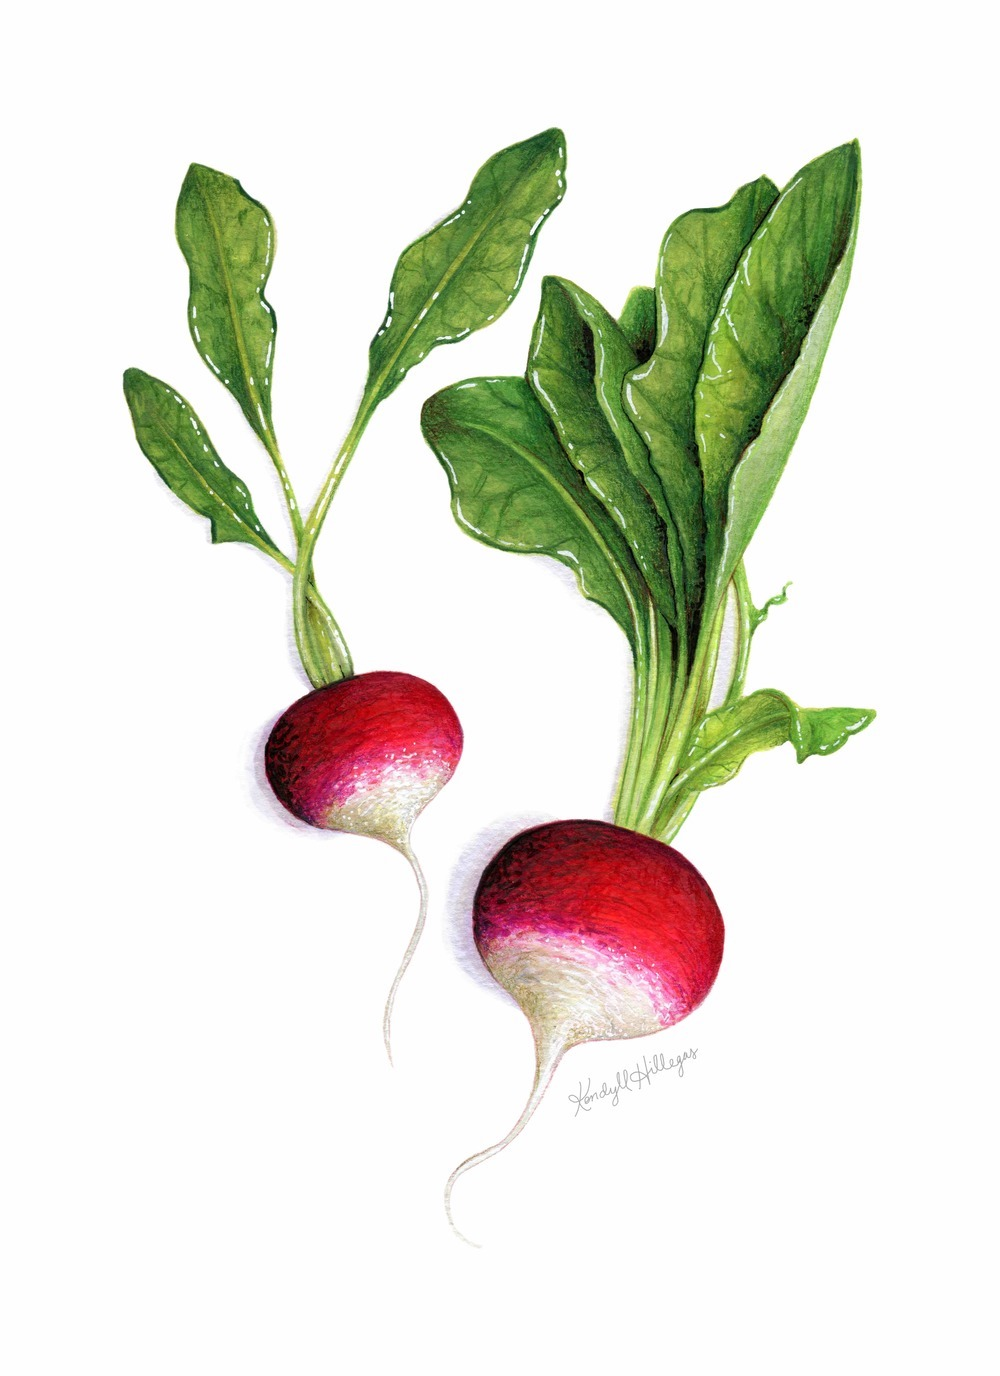 Radish Illustration